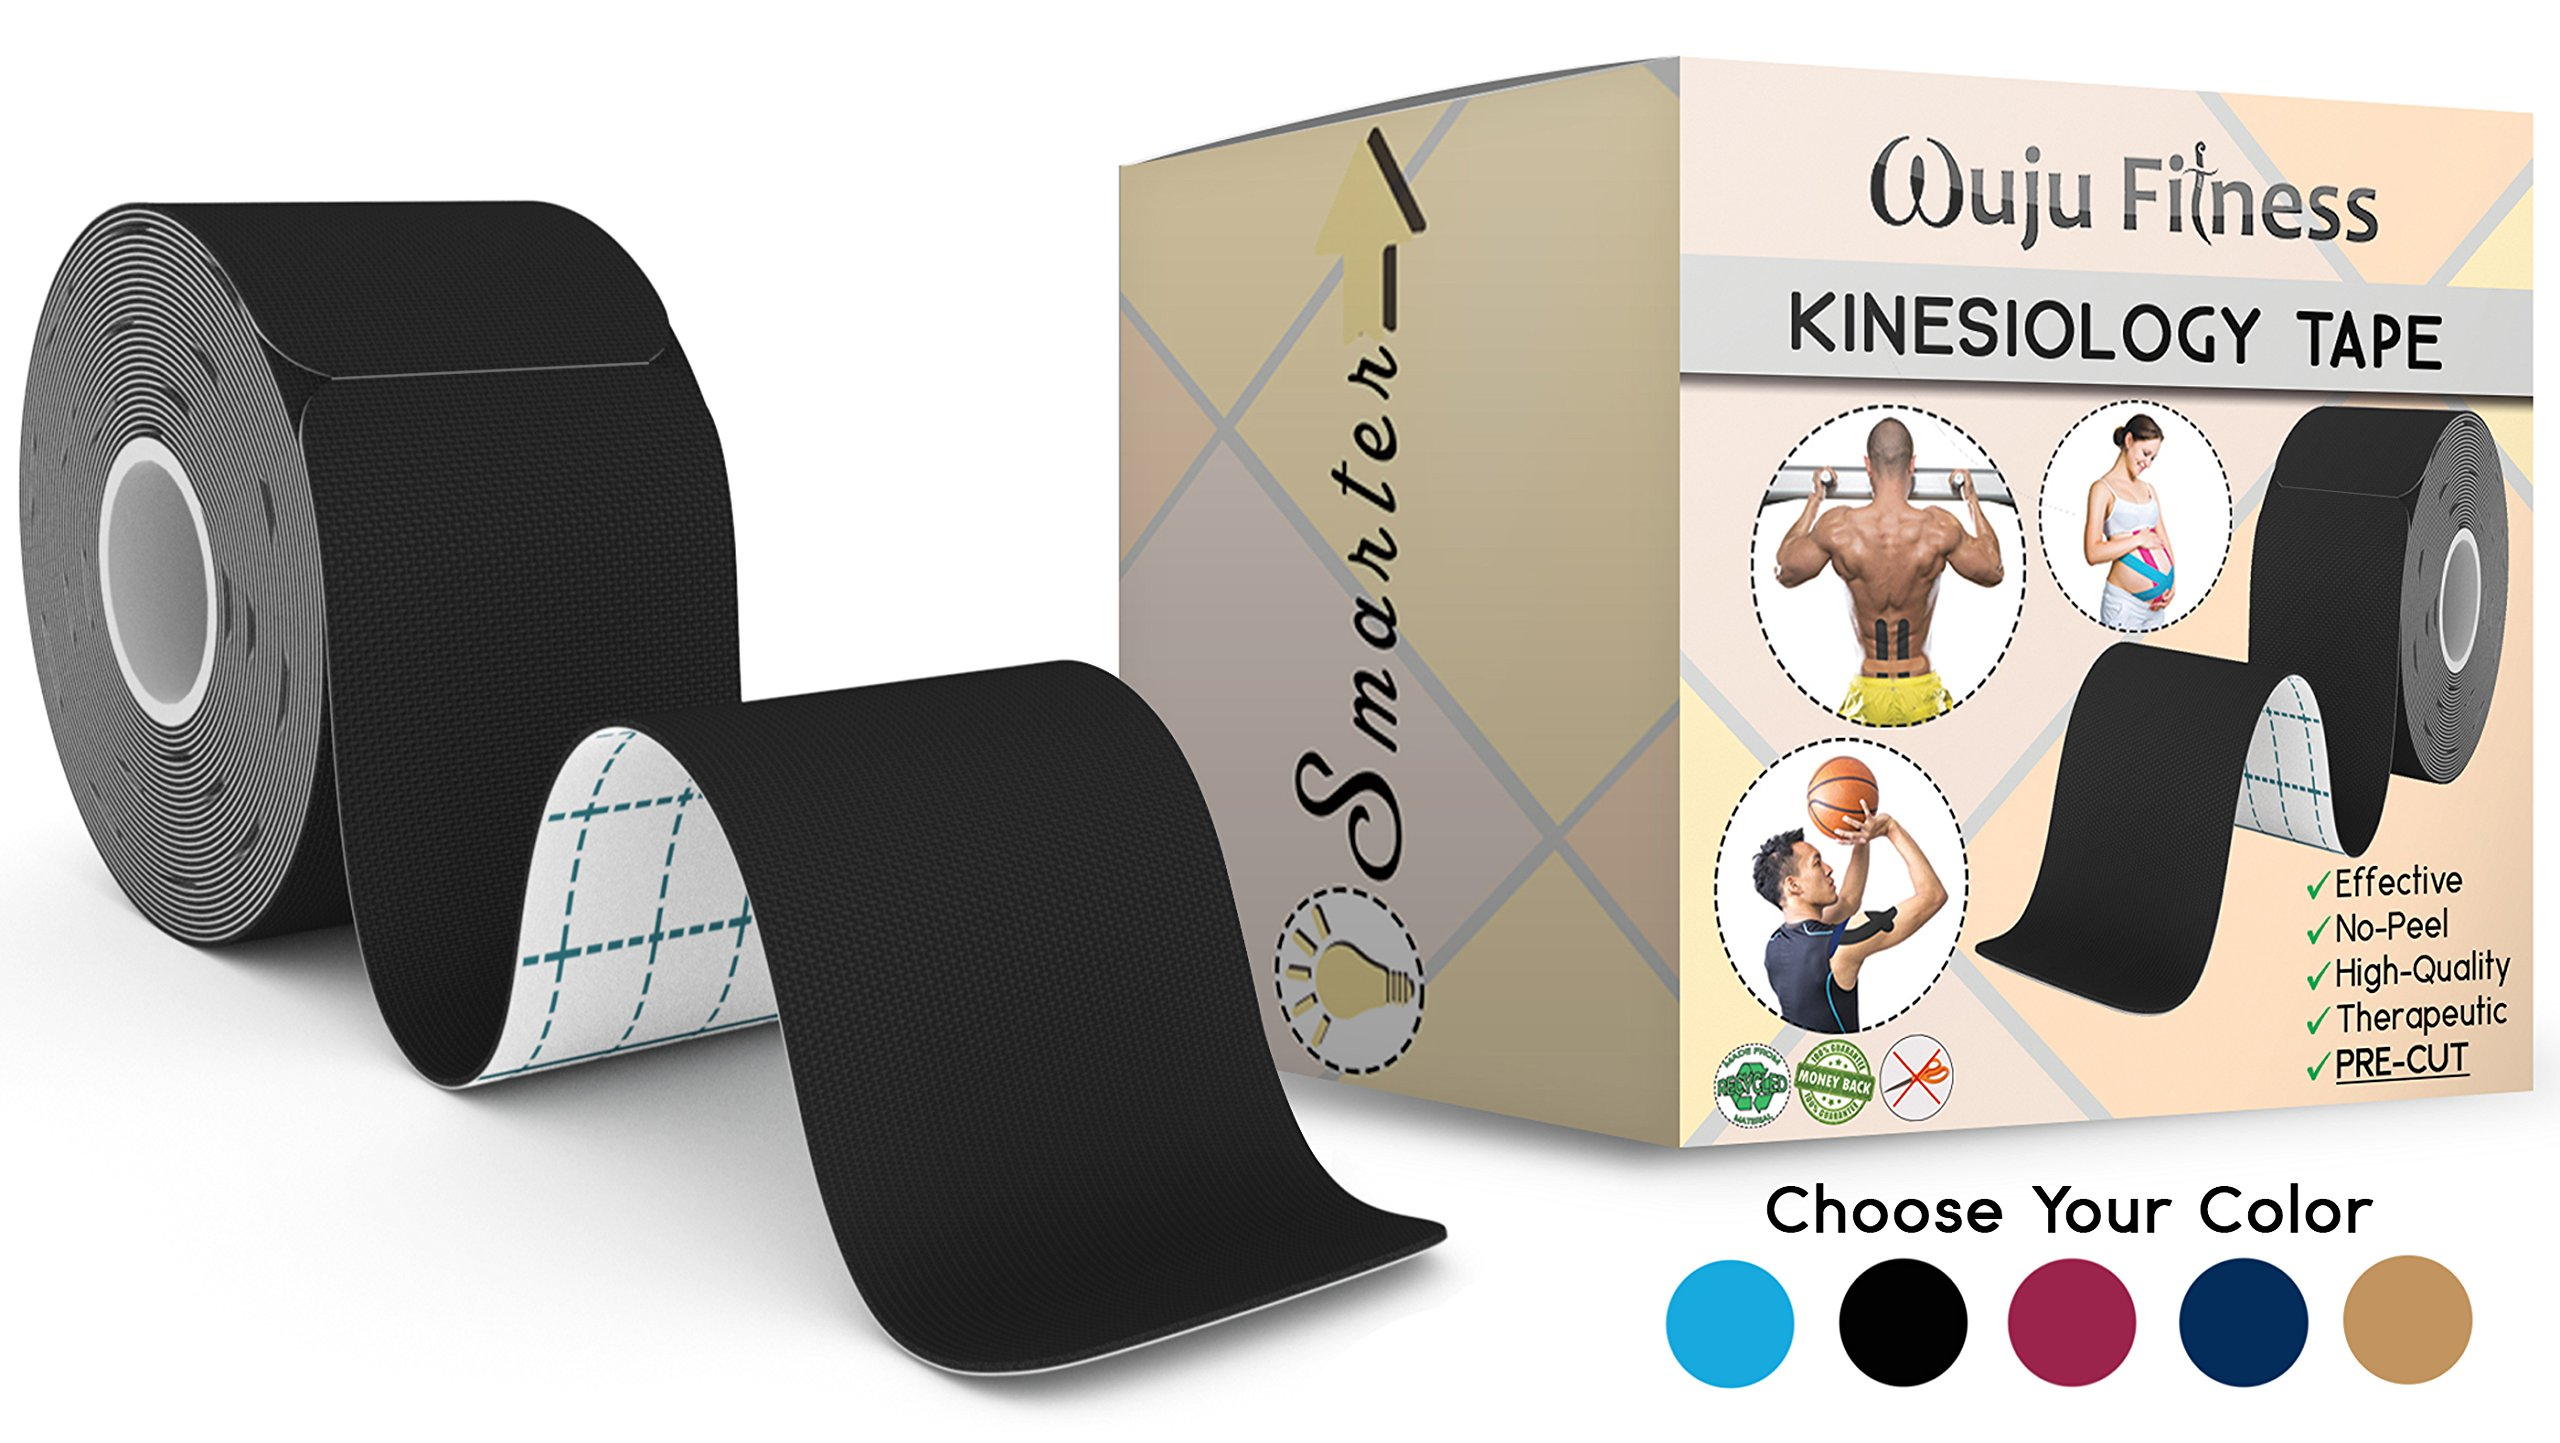 Athletic Tape for First Aid Kit, Physical Support Therapy, Sports Exercises. Lower Back, Heel, Foot, Joint, Shoulder, Muscle and Plantar Fasciitis Pain Relief. 20 precut Black KT strips 2''x10''